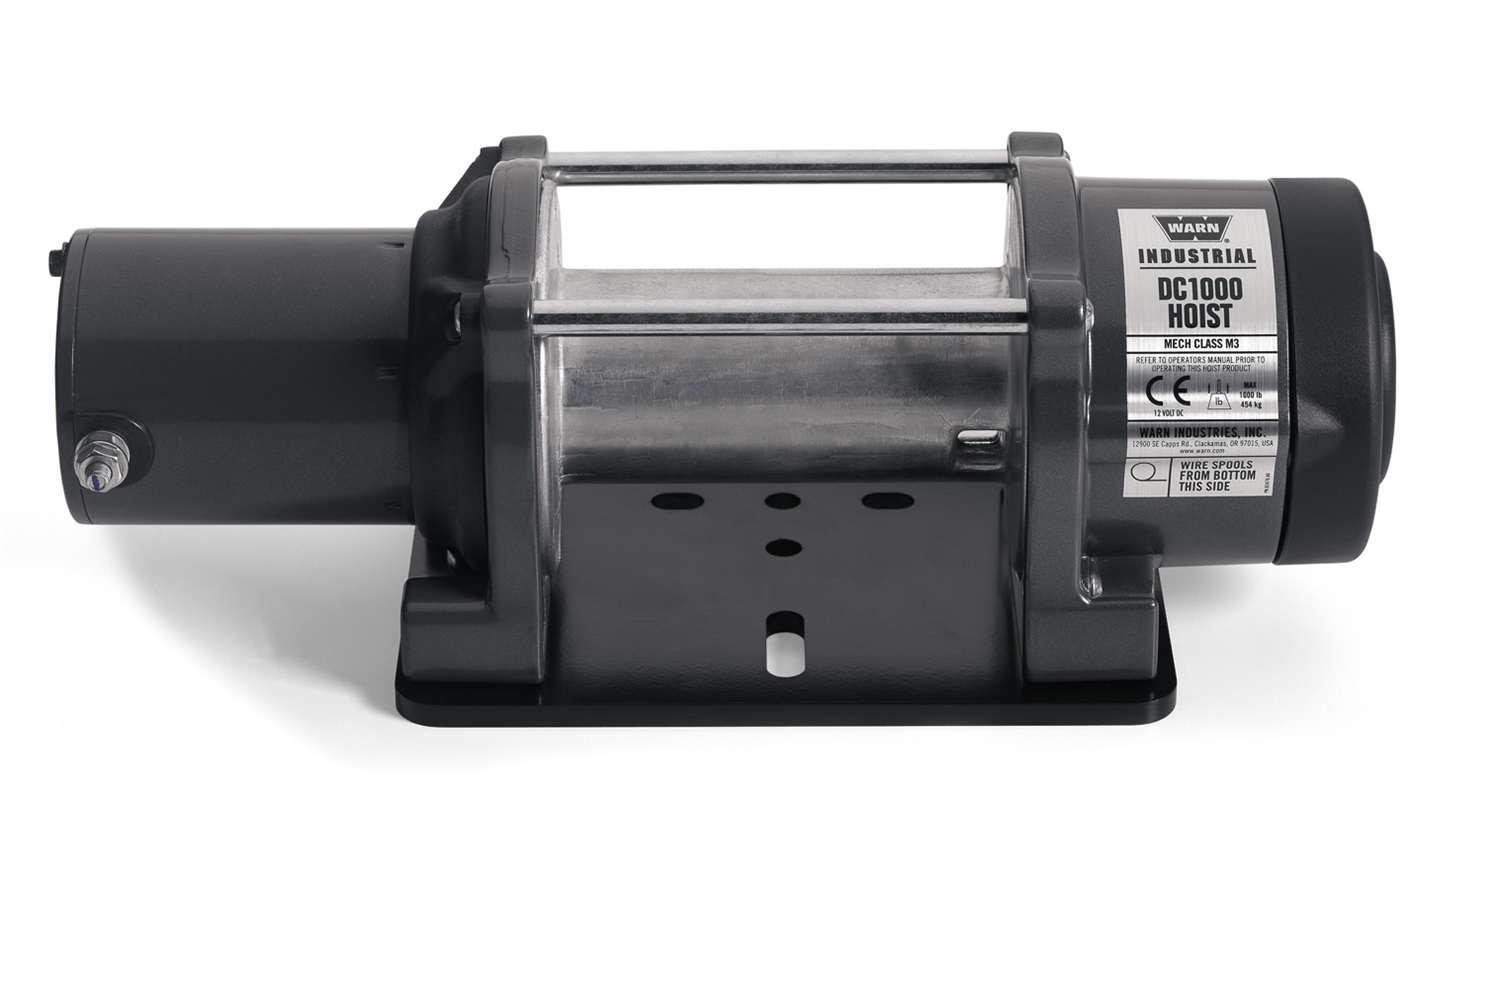 hight resolution of 82470 warn industries winch 24 volt electric